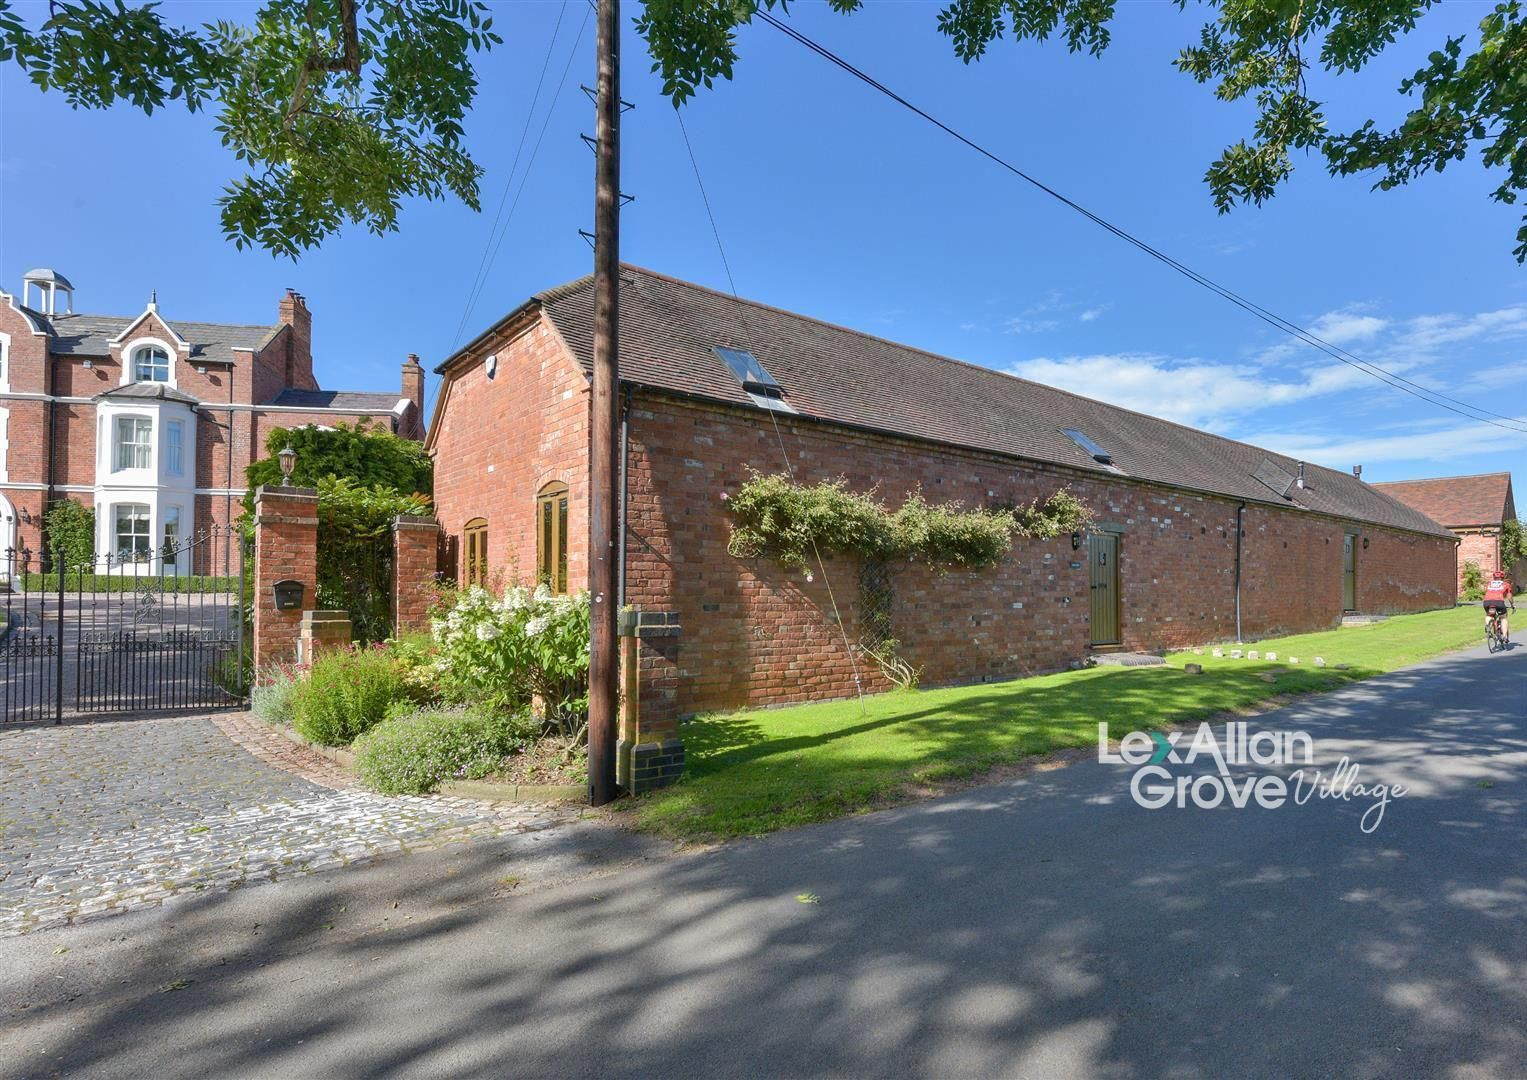 3 bed barn-conversion for sale in Chaddesley Corbett, DY10